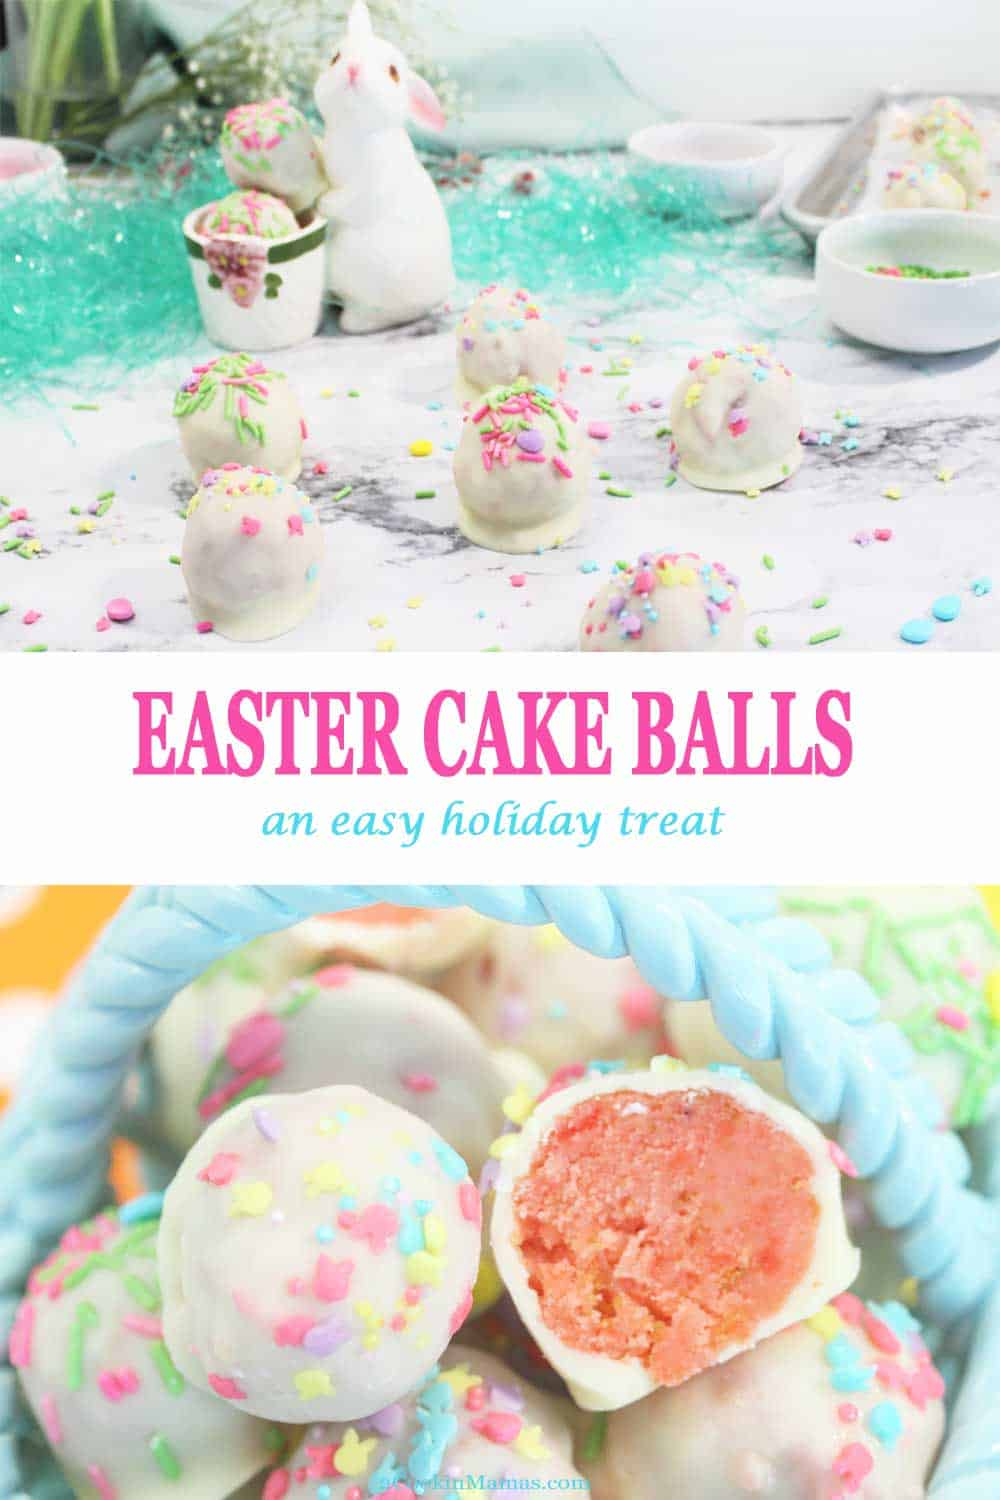 Easter Cake Balls | 2 Cookin Mamas These Easter Cake Balls, aka Cake Truffles, are an easy, fun to make bite-sized dessert. They start with a boxed mix of your favorite cake, combined with cream cheese frosting, then dipped into a coating of rich white chocolate. Decorated with seasonal sprinkles, they make a delectable and delicious Easter treat. #cakeballs #cakepops #dessert #easy #recipe #easter #whitechocolate #treat #truffles